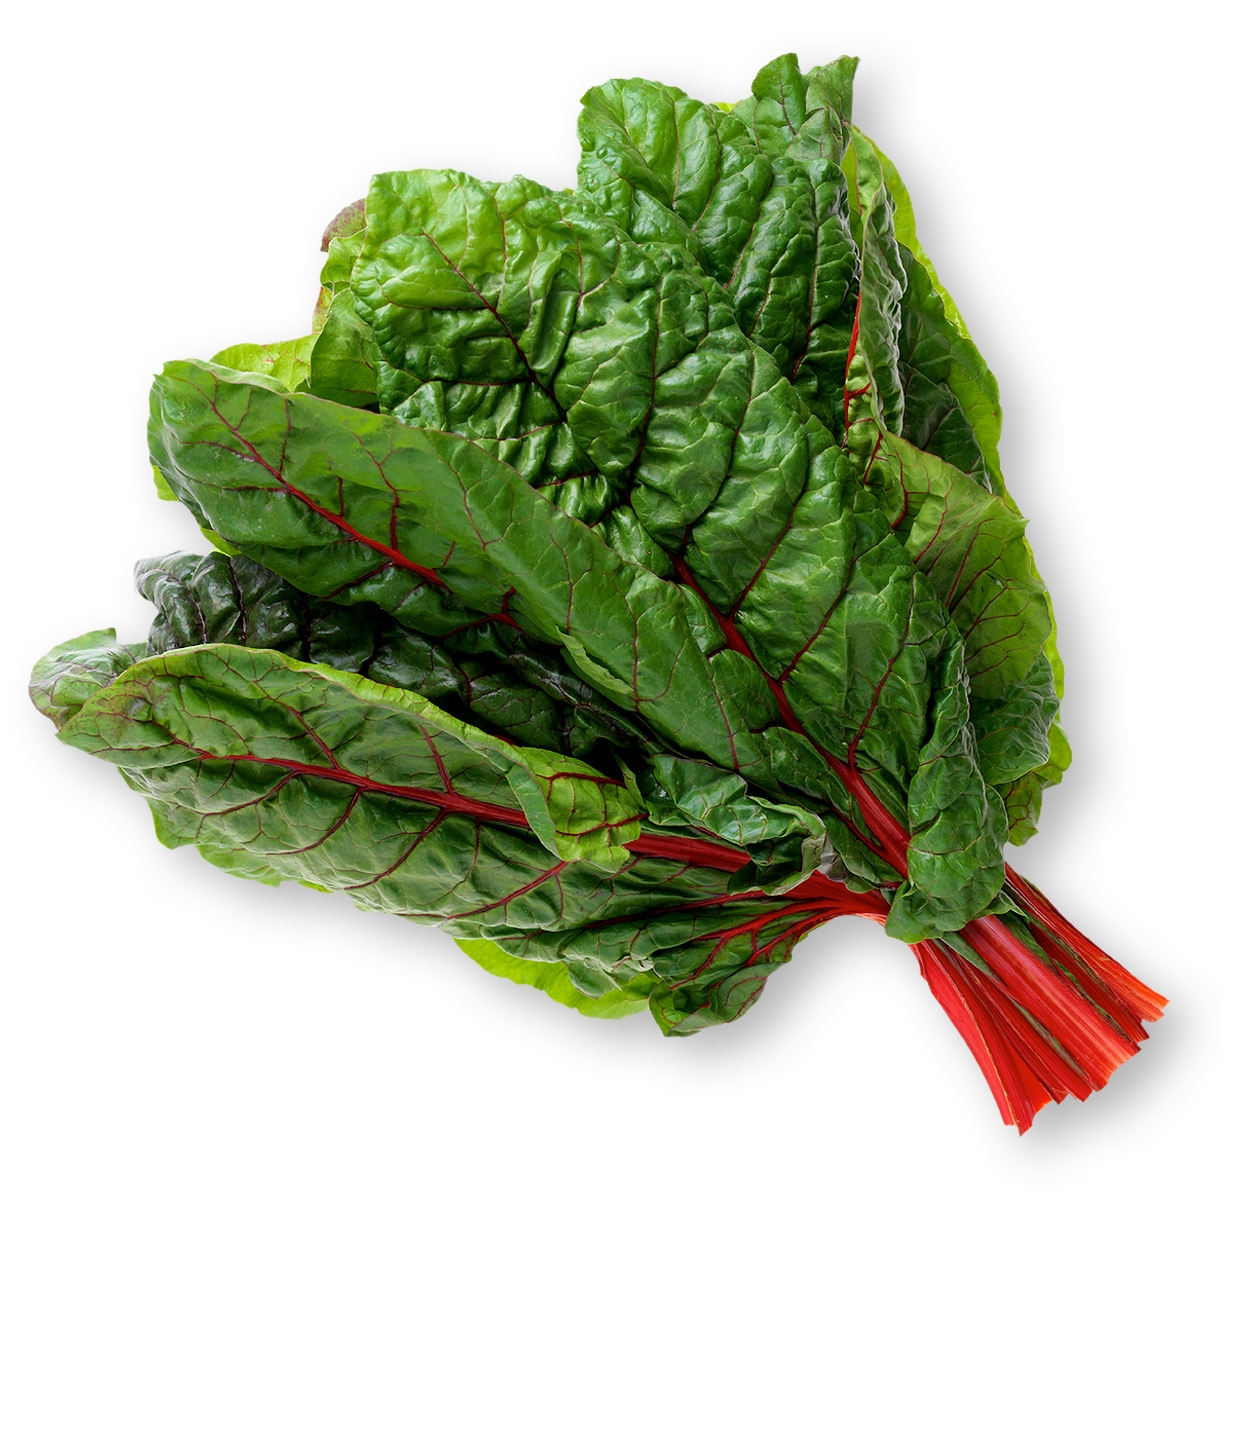 a bunch of red chard - green leaves with red stems